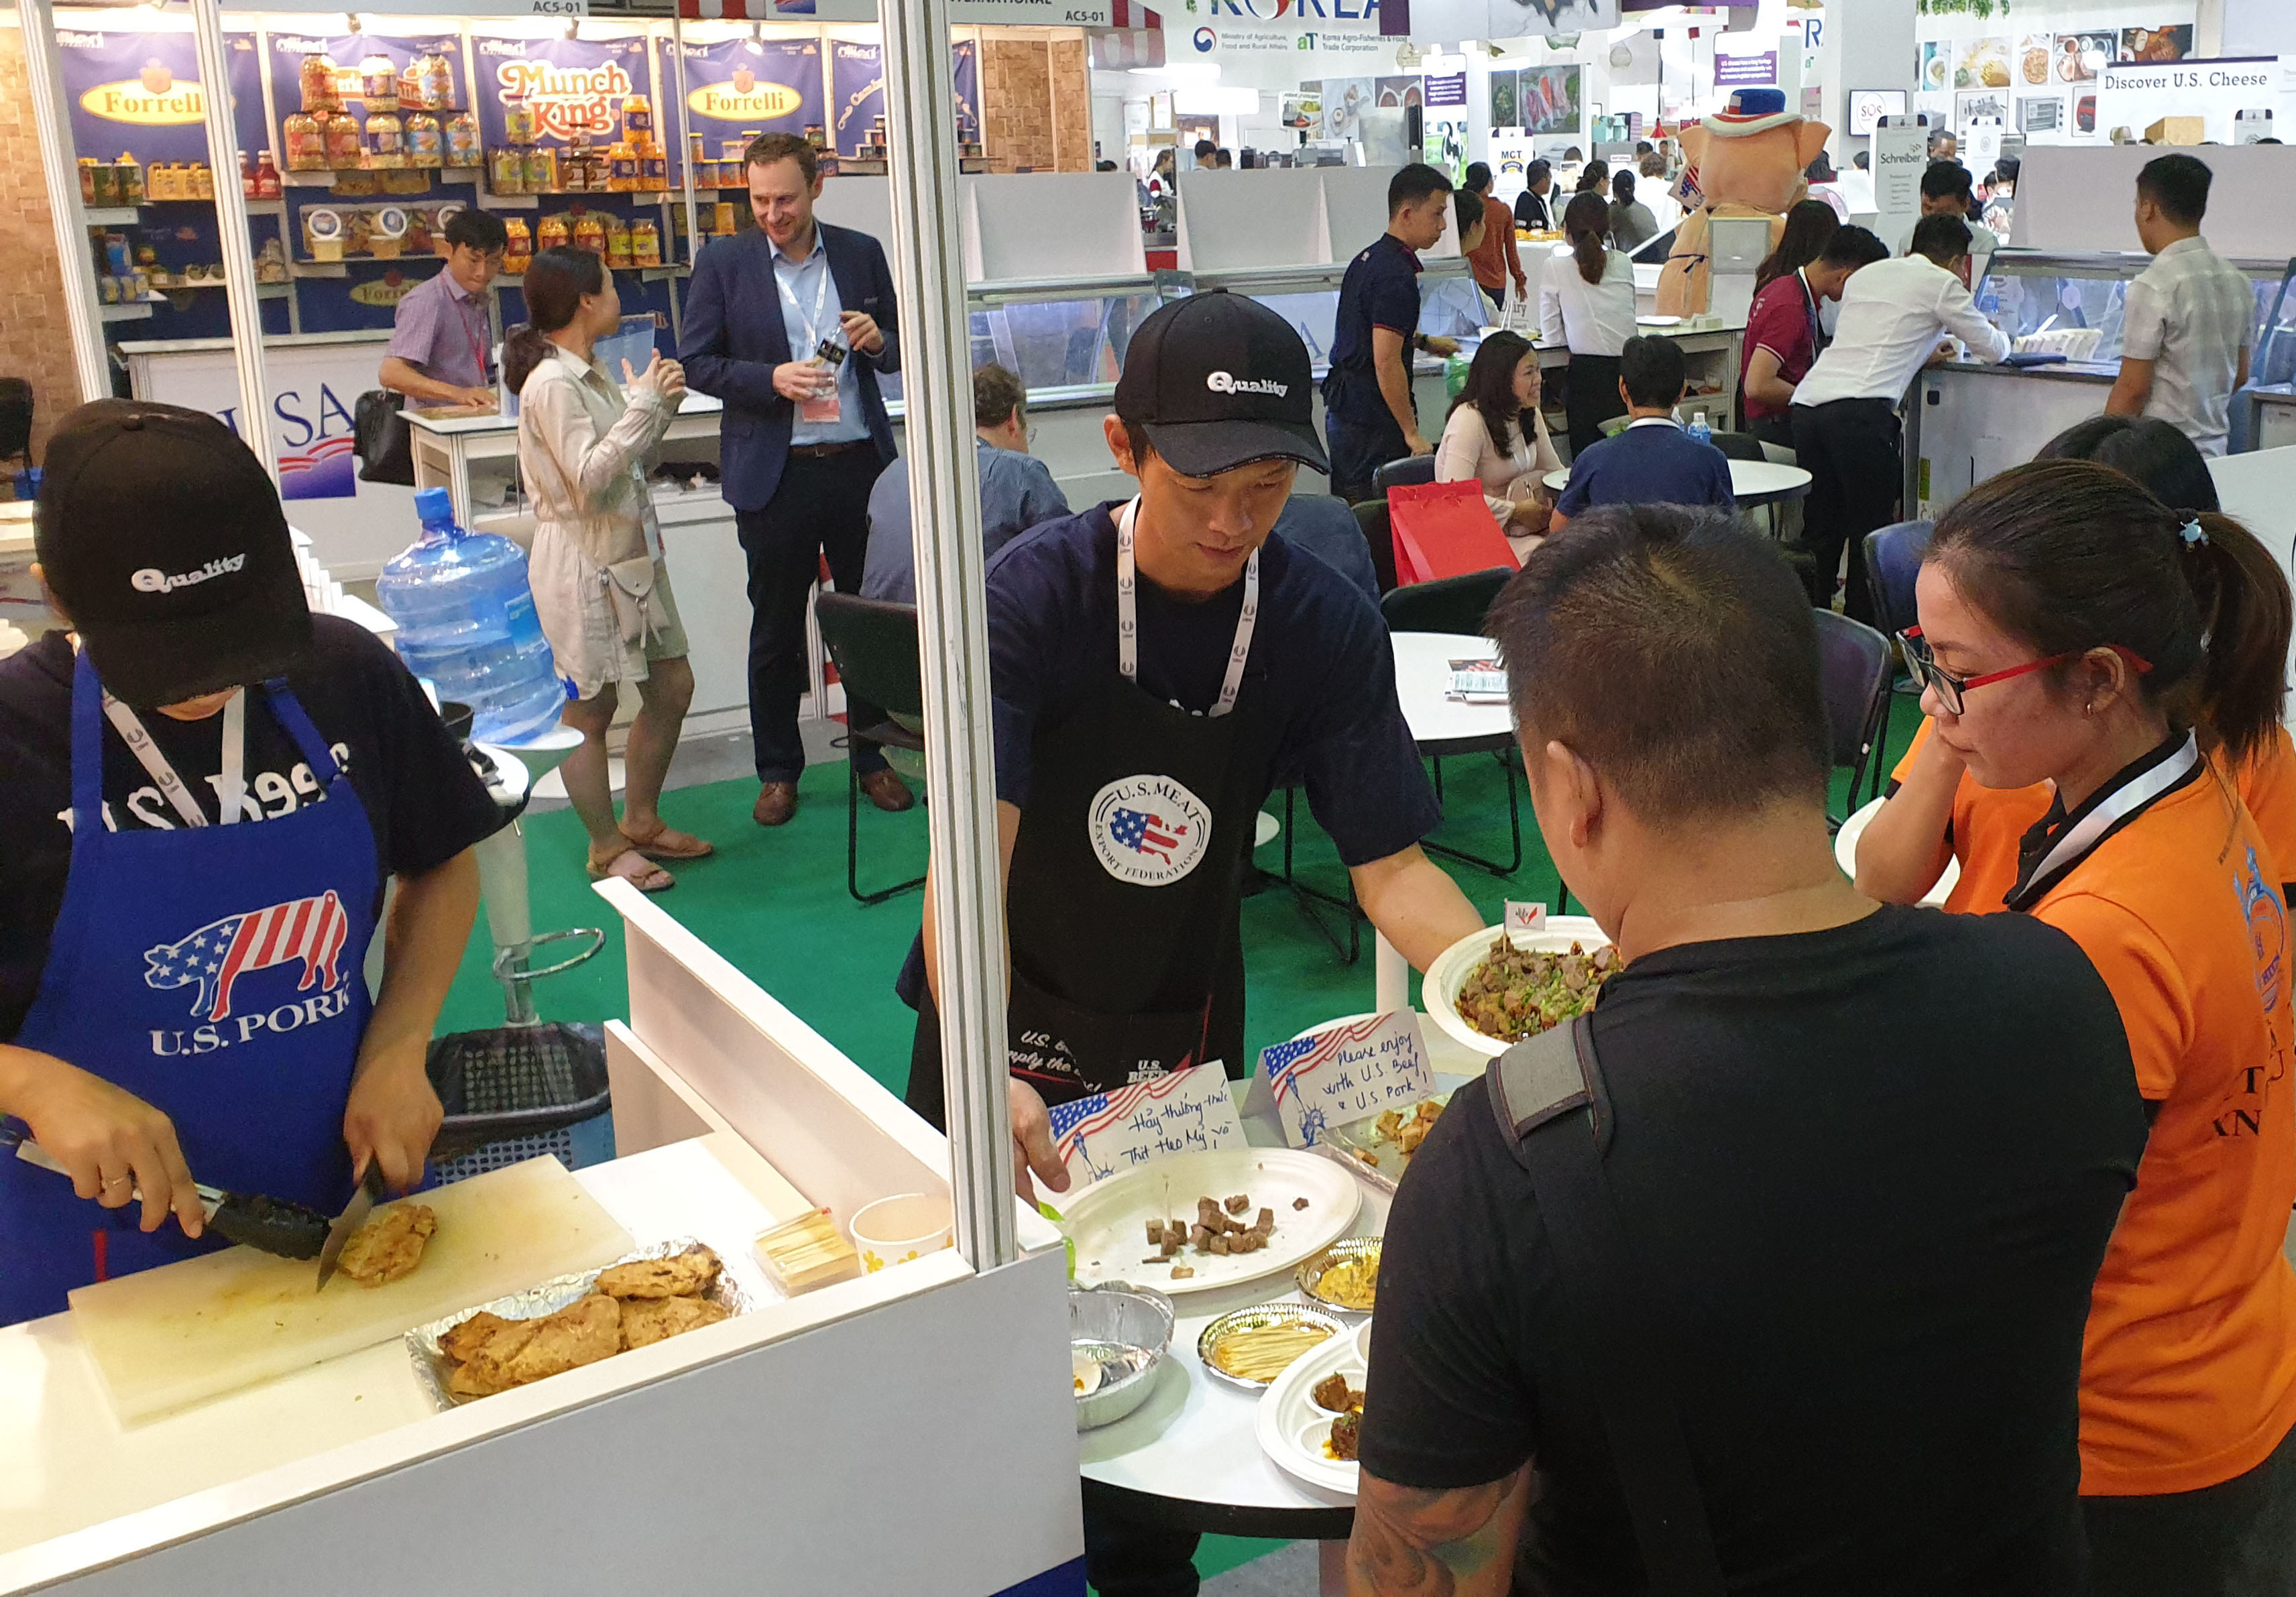 The USMEF booth at Food and Hotel Vietnam offered tasting samples of U.S. pork and beef, as well as information about the advantages of U.S. red meat over competitors' products